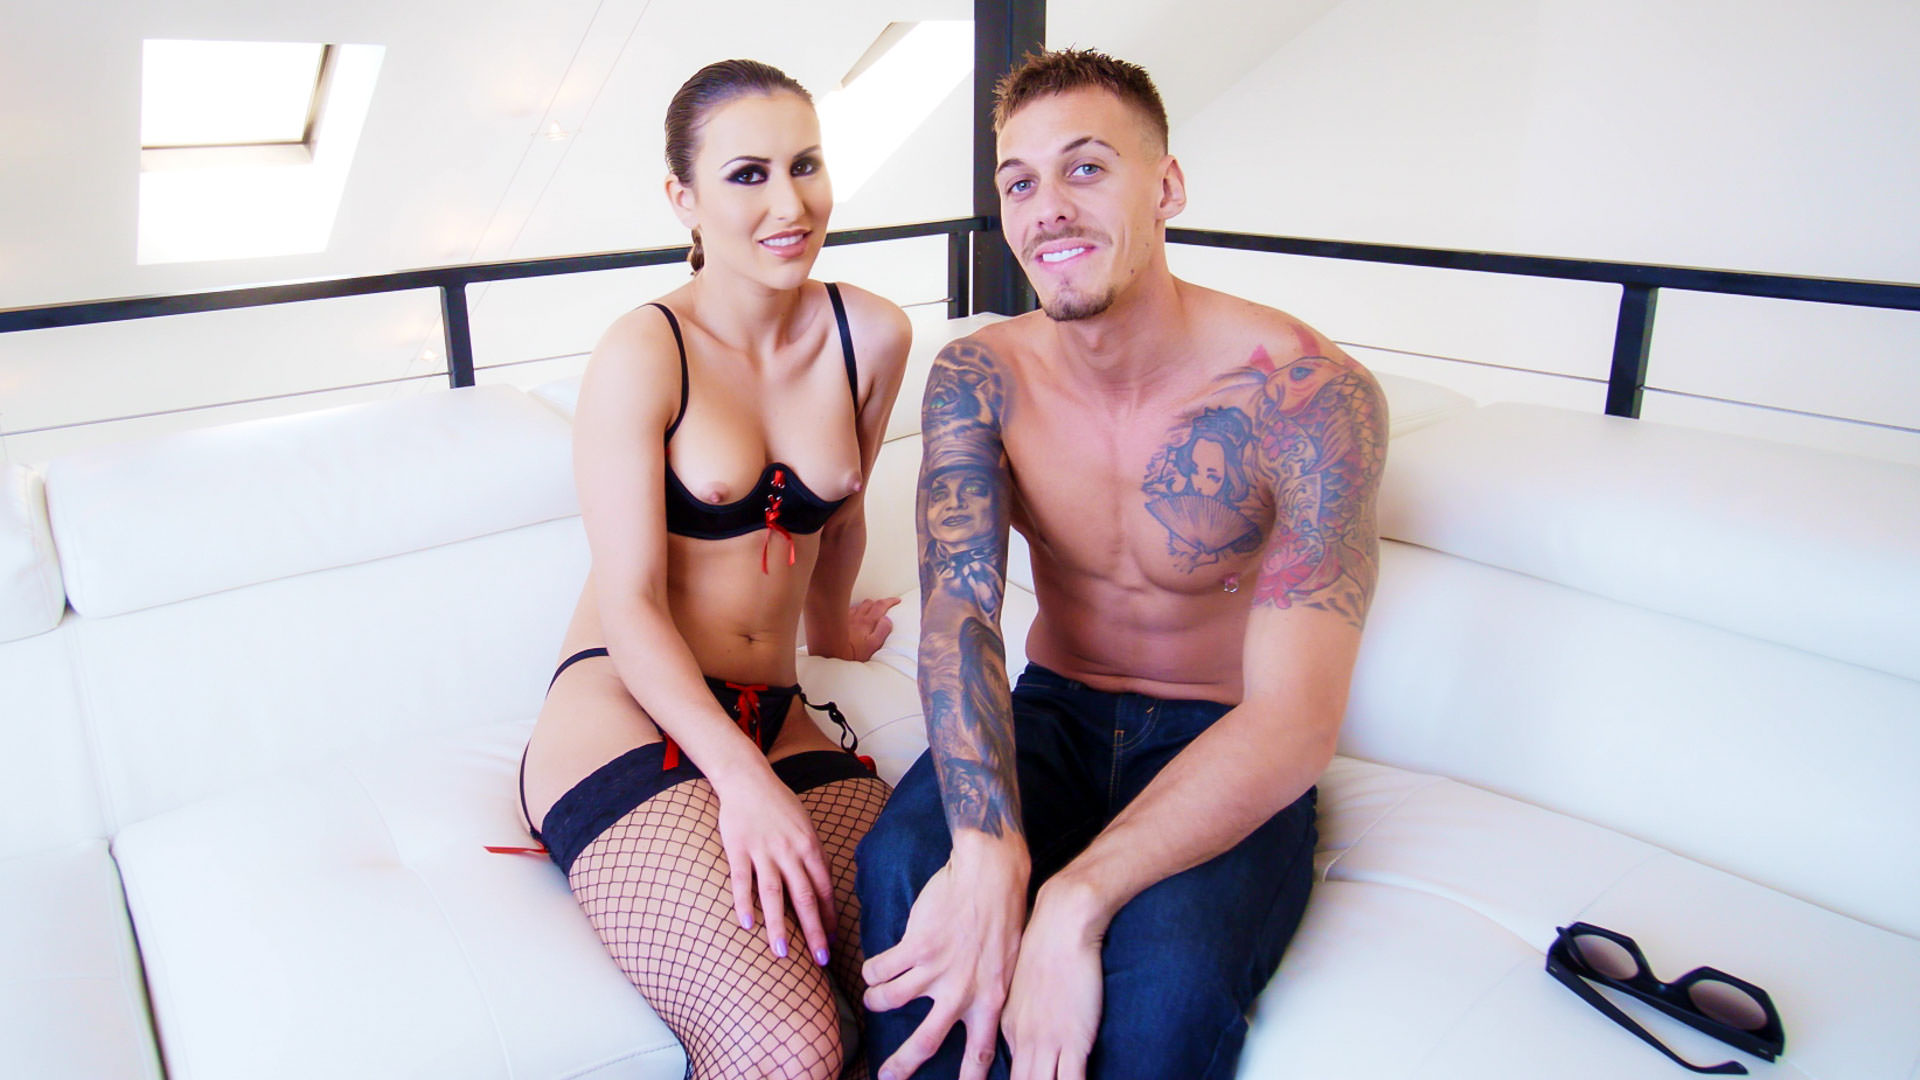 BTS-Paige Owens: Oil-Soaked Anal Gaping - Chris Diamond & Paige Owens 1